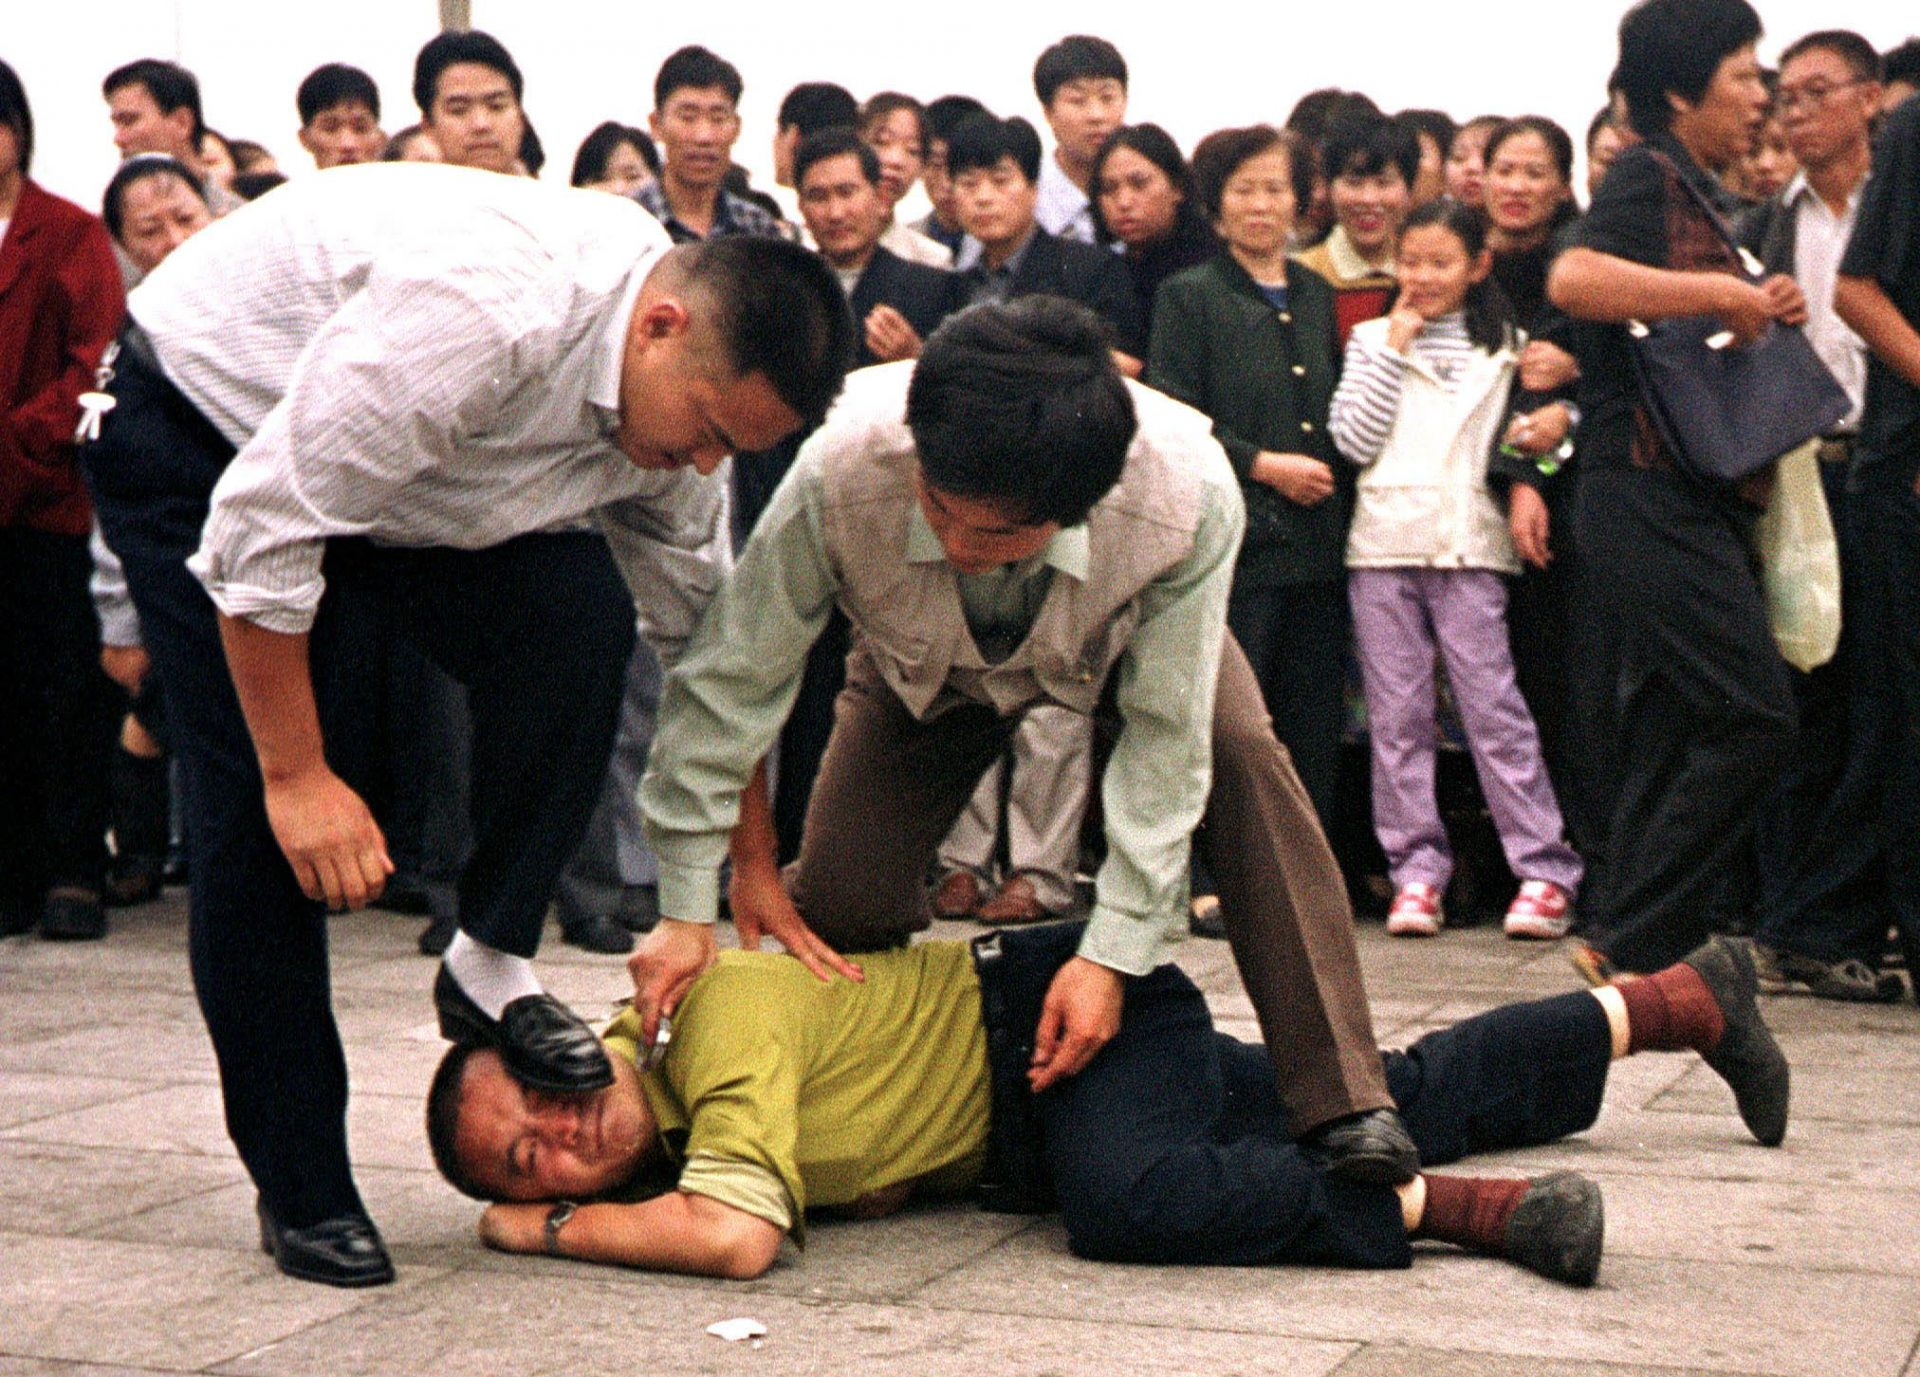 The photo shows Chinese plainclothes police in Tiananmen Square stamping on the face of a man for protesting the communist regime's persecution of the Falun Gong spiritual practice. (Image: Minghui.org)